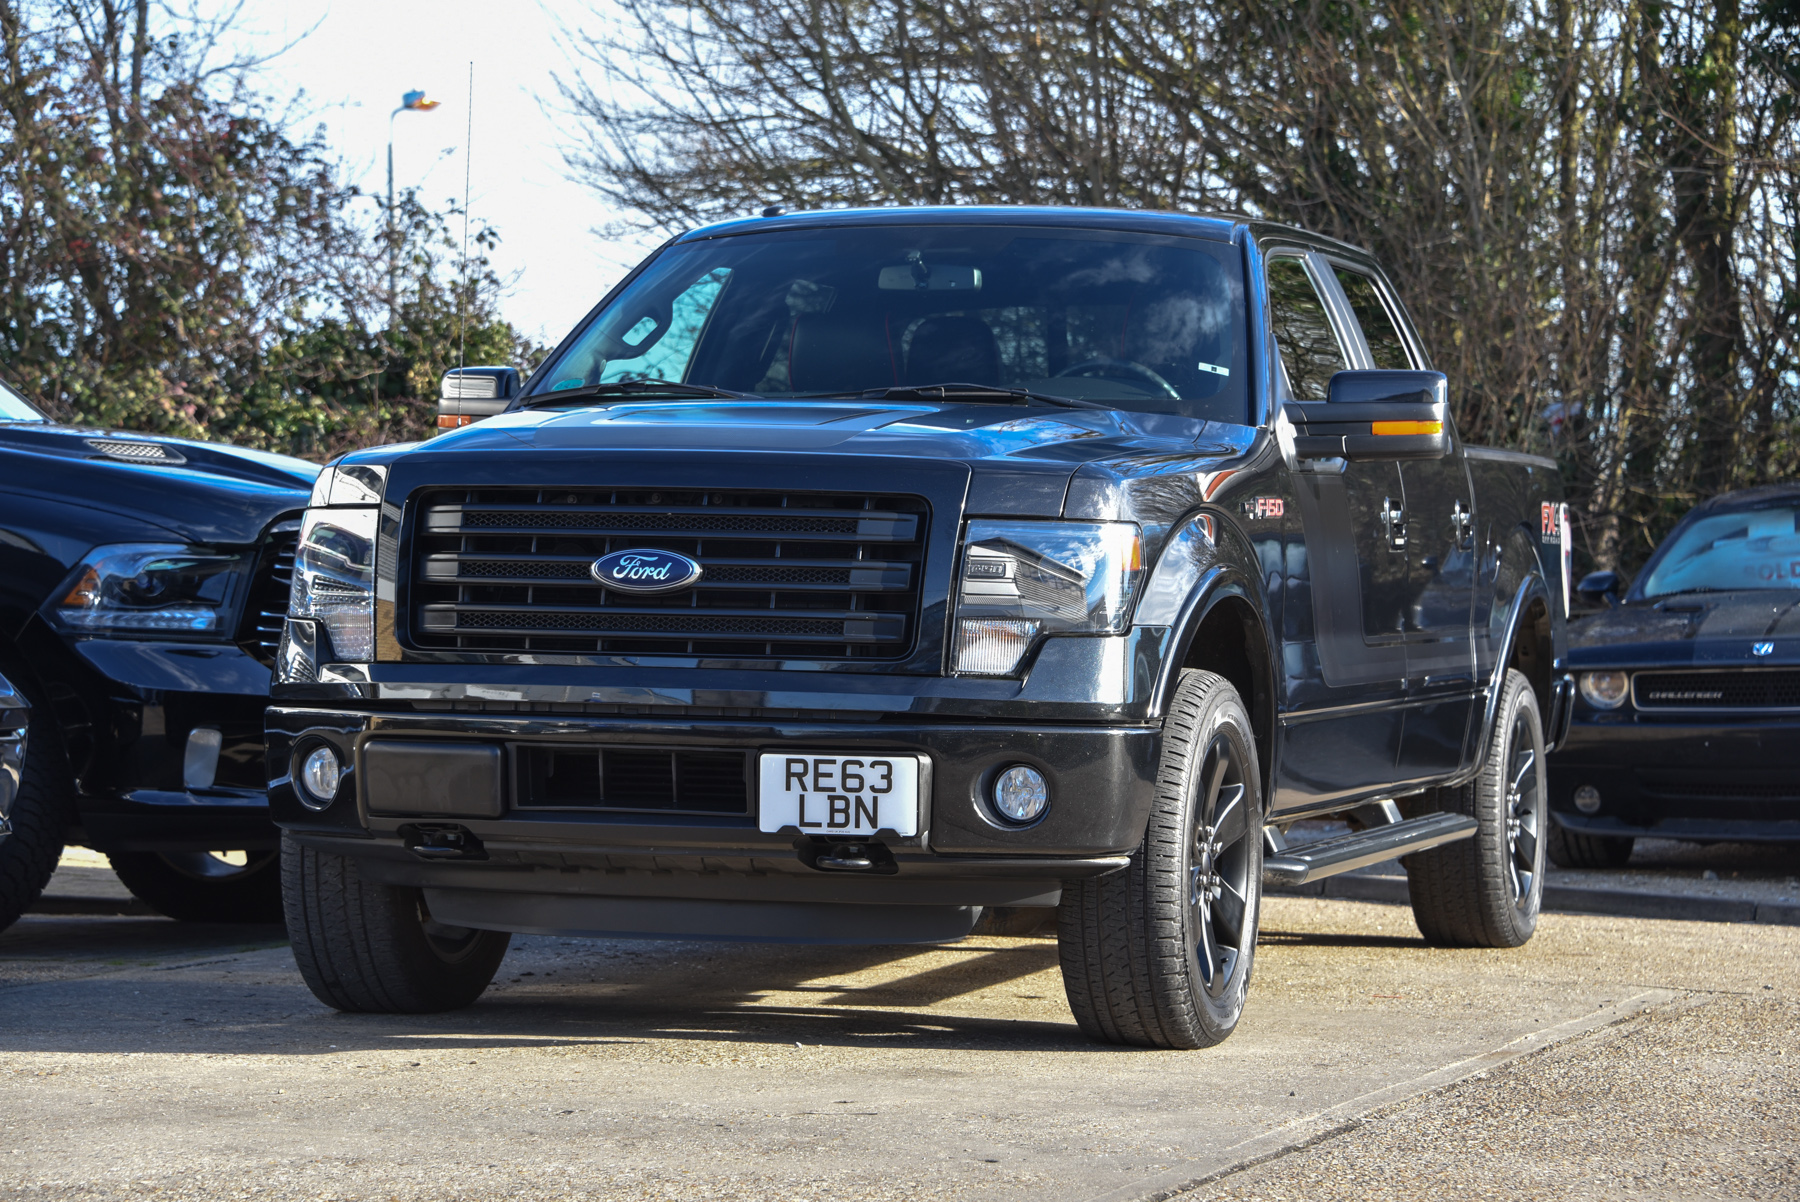 2014 ford f150 fx4 super crew no vat david boatwright partnership dodge ram f 150. Black Bedroom Furniture Sets. Home Design Ideas